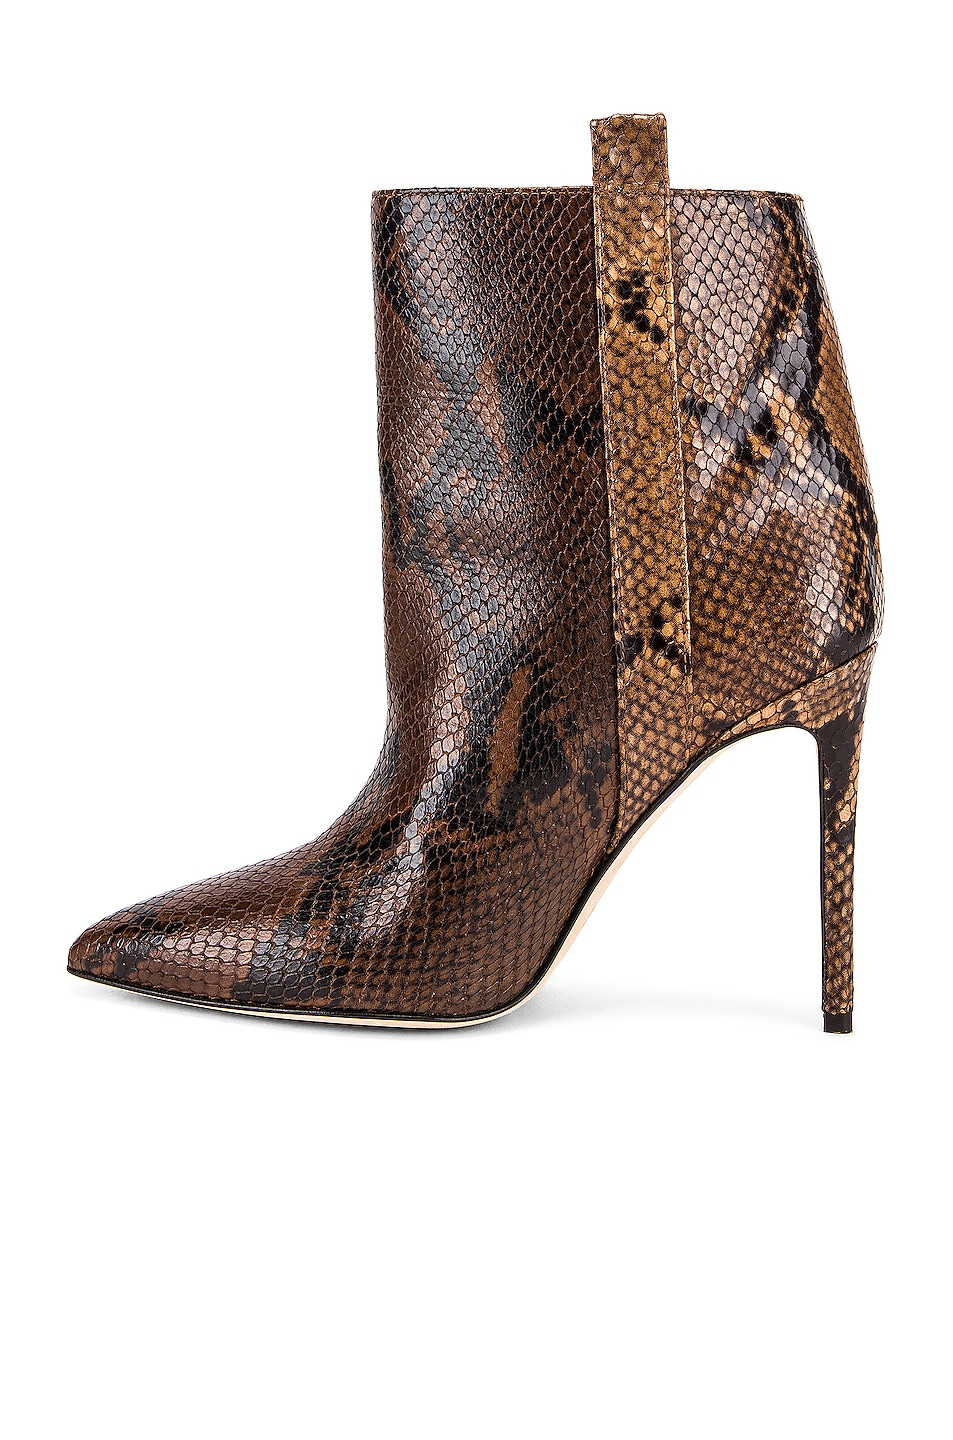 Image 5 of Paris Texas Snake Print Ankle Boot in Brown & Camel